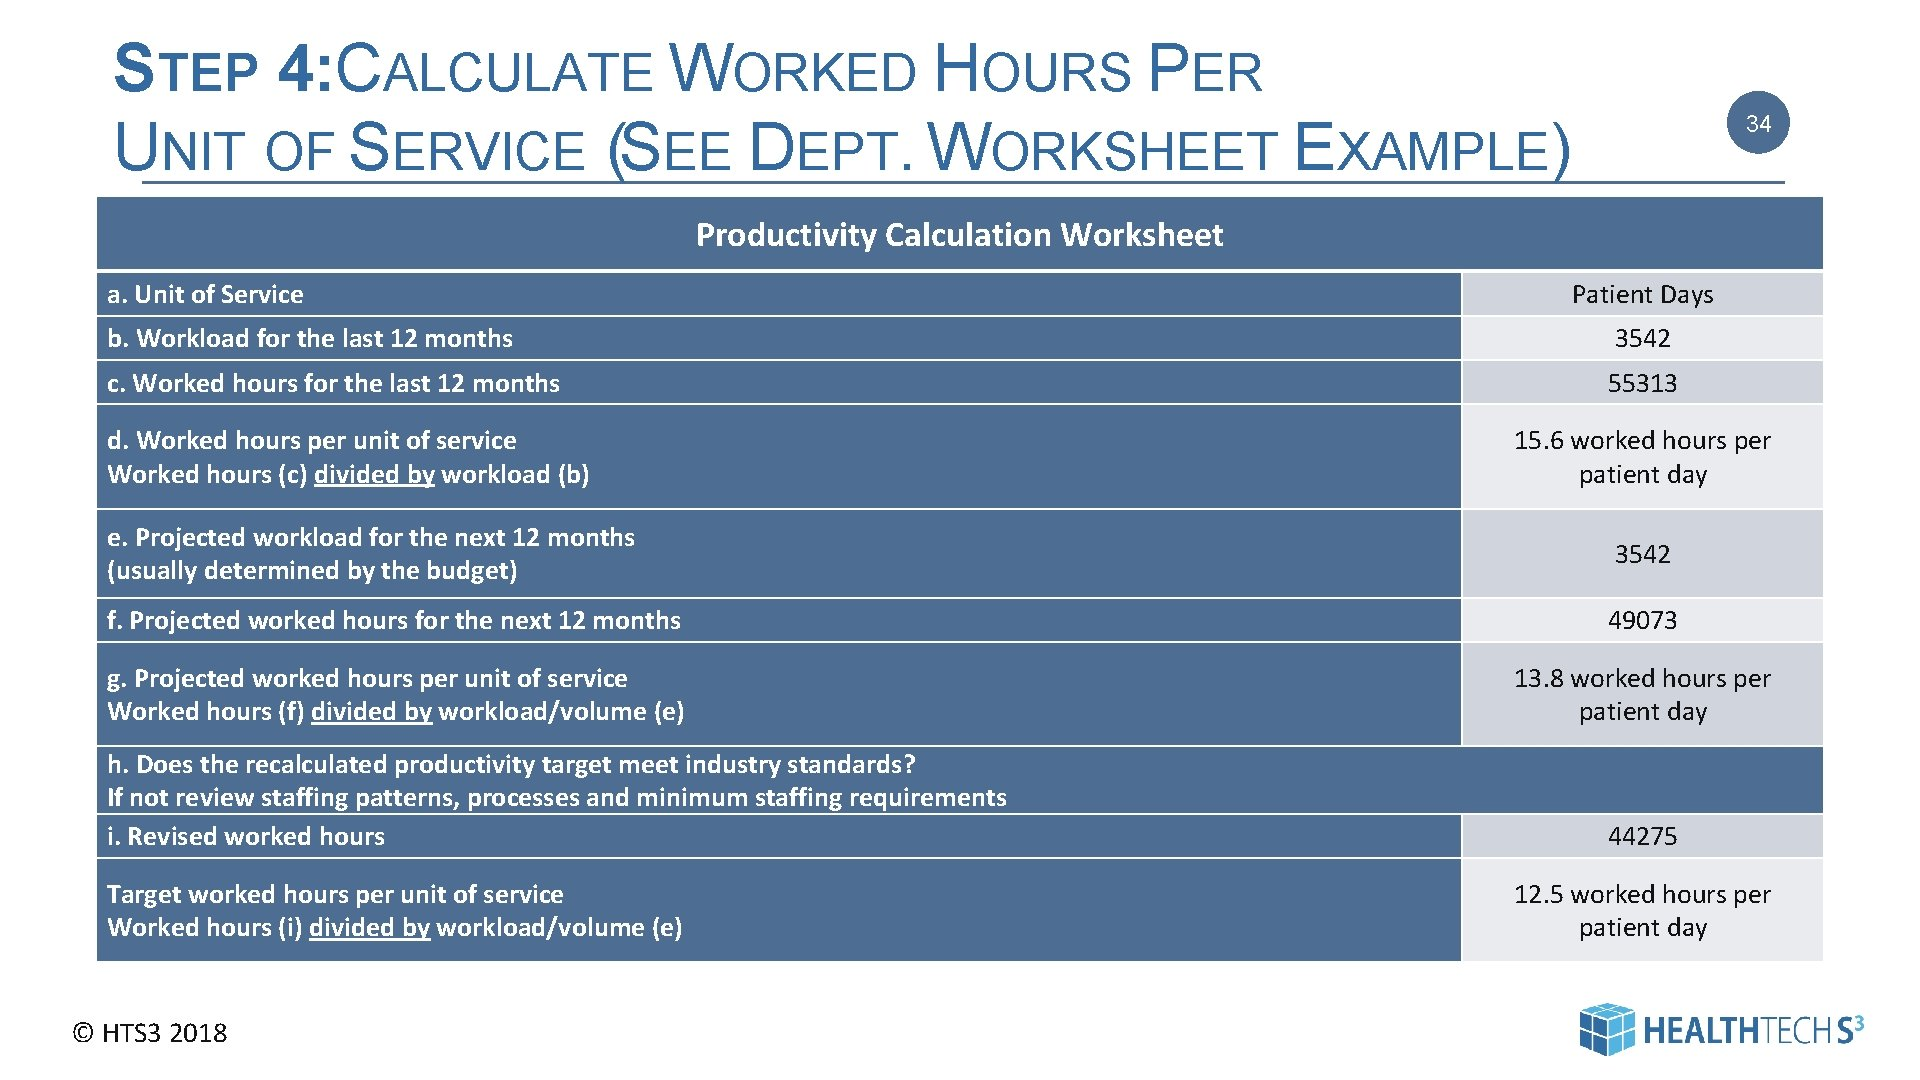 STEP 4: CALCULATE WORKED HOURS PER UNIT OF SERVICE (SEE DEPT. WORKSHEET EXAMPLE) 34